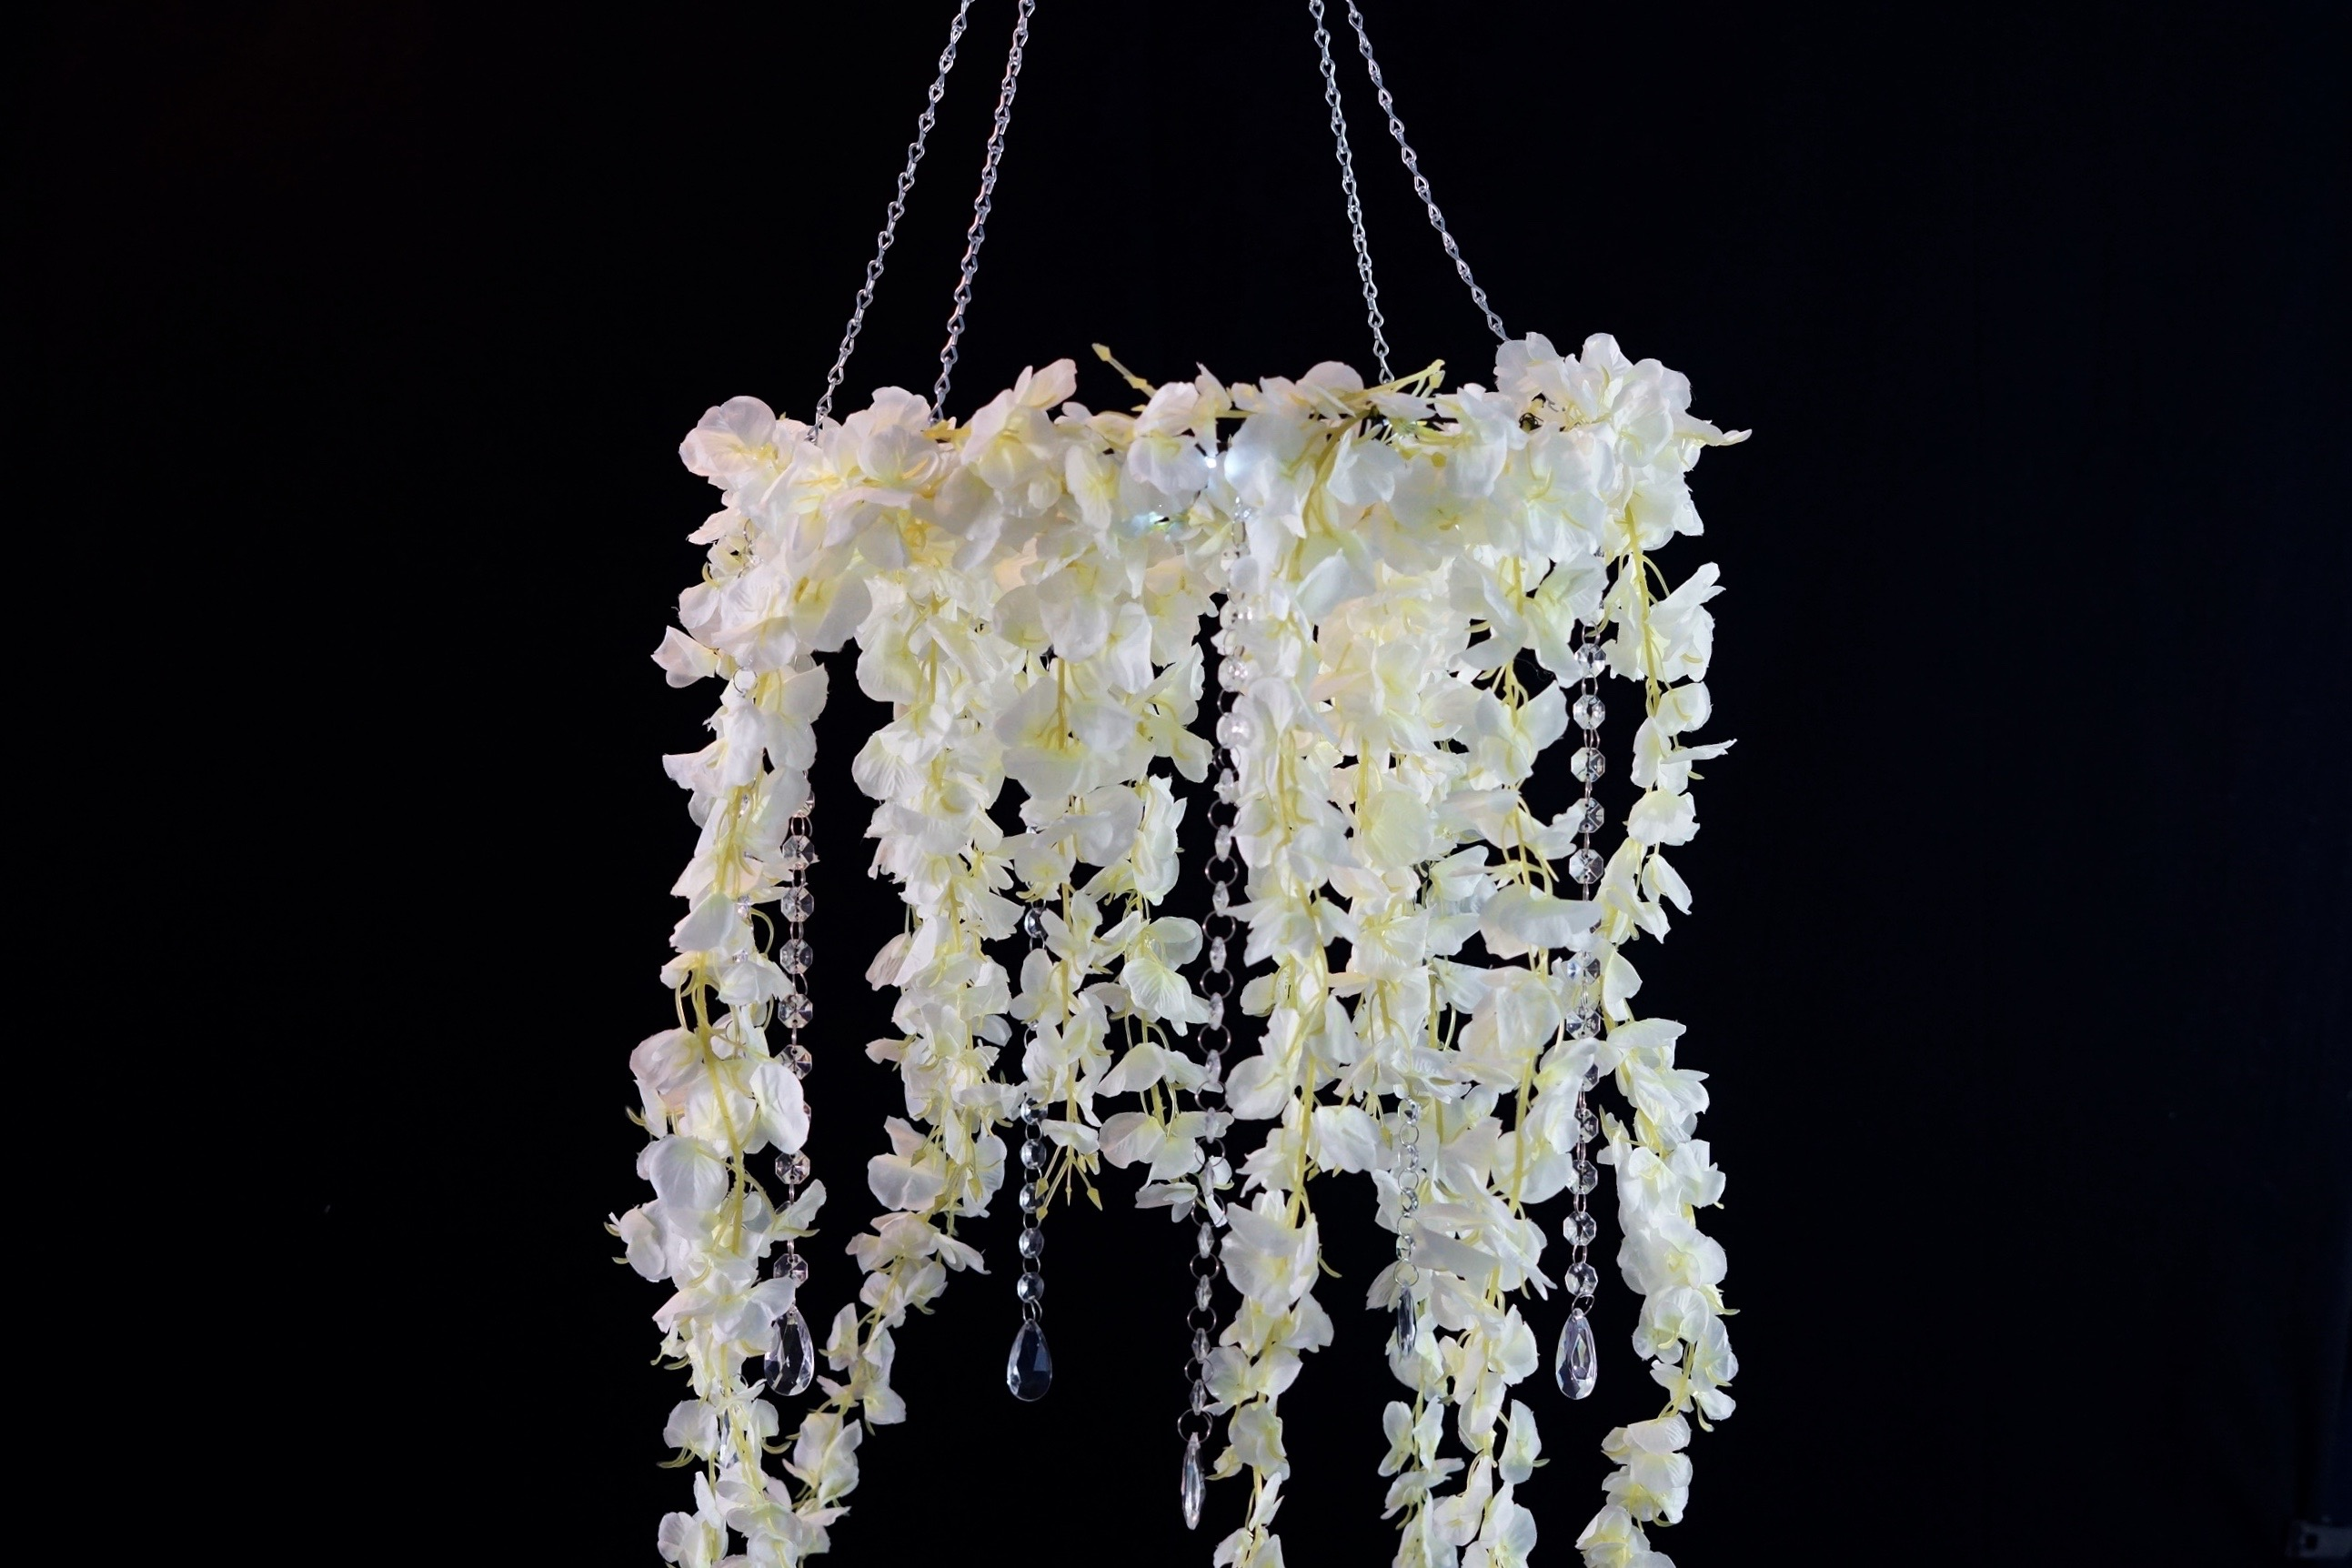 Recreate this beautiful hanging diy wedding floral chandelier hanging floral chandelier aloadofball Image collections